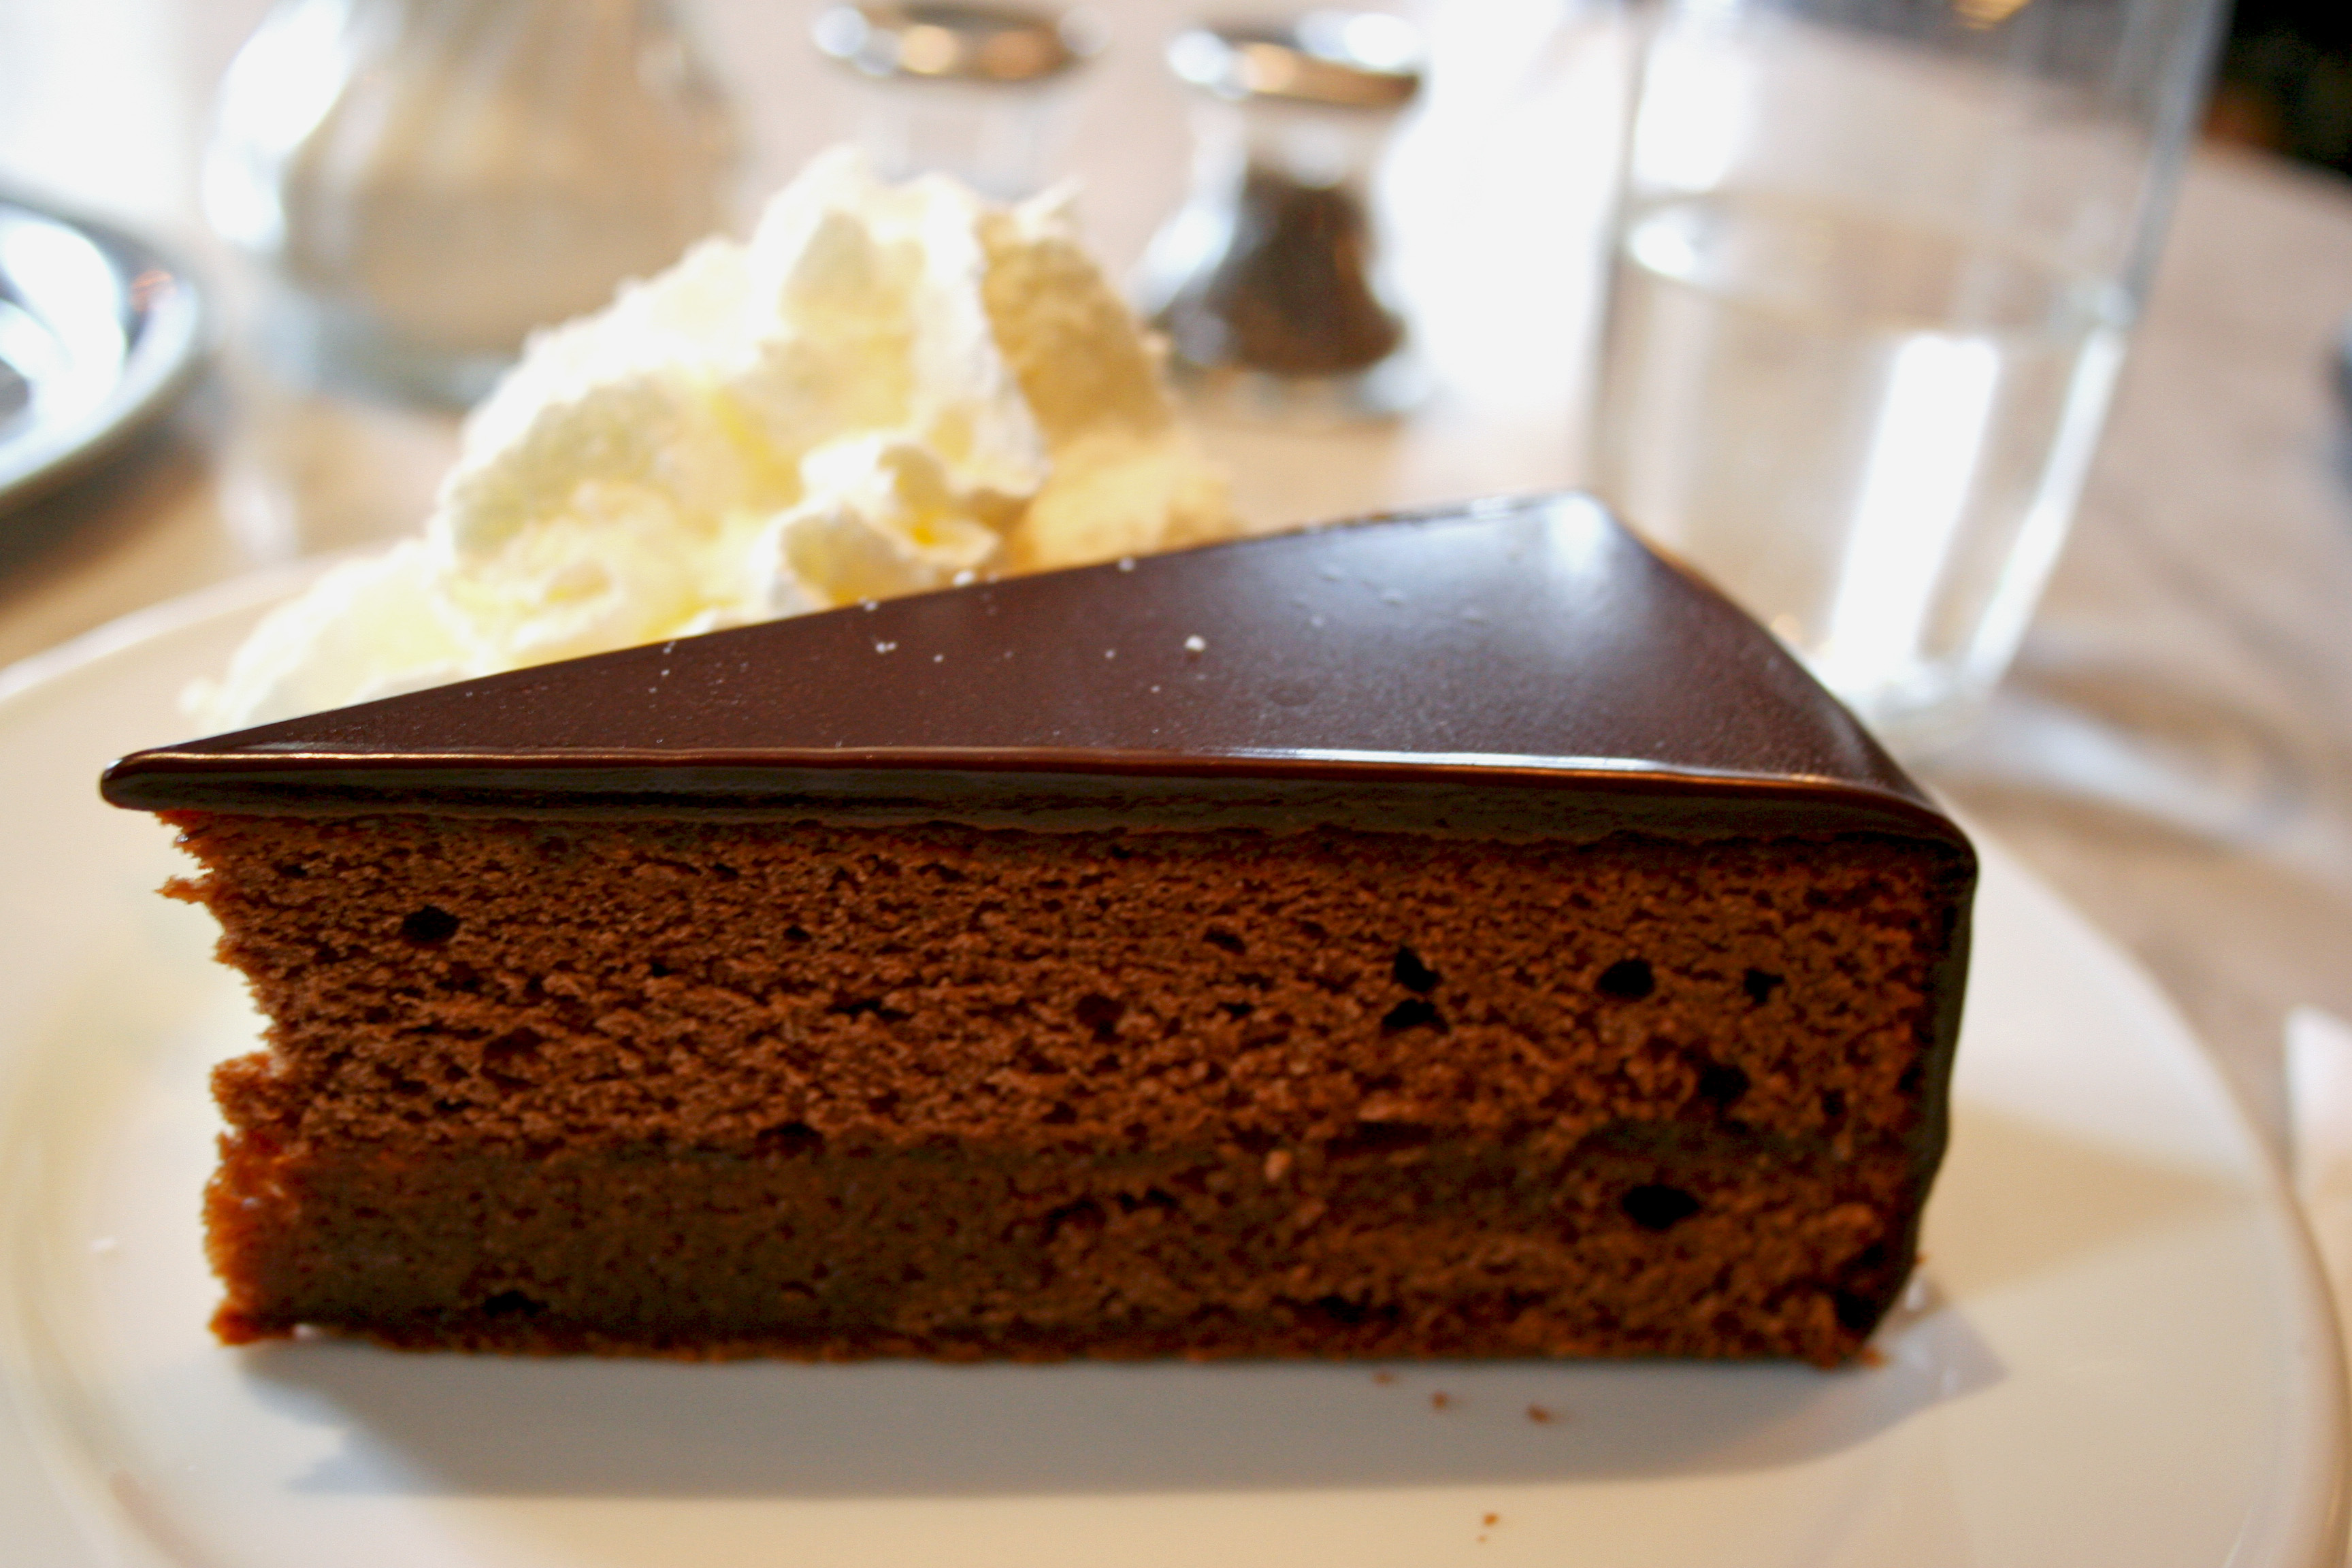 File:Café Sabarsky Sachertorte.jpg - Wikipedia, the free encyclopedia